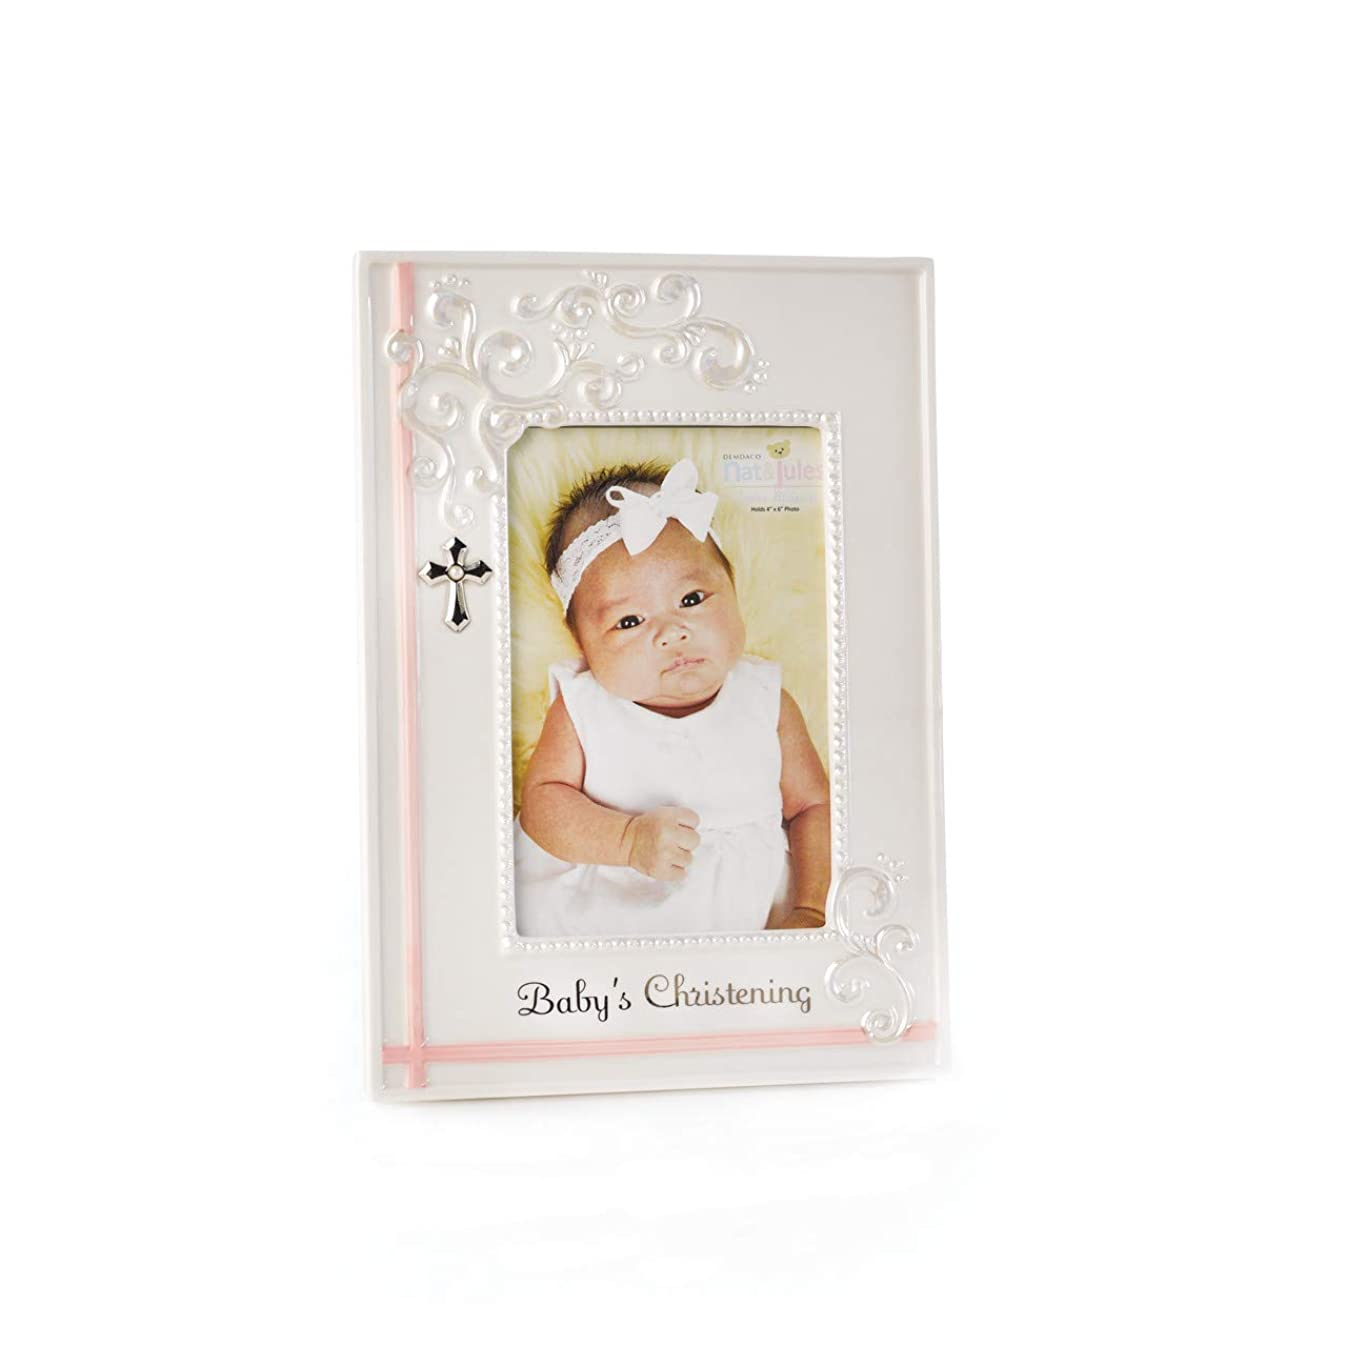 DEMDACO Pink Baby's Christening 6.75 x 9.5 Porcelain Picture Frame